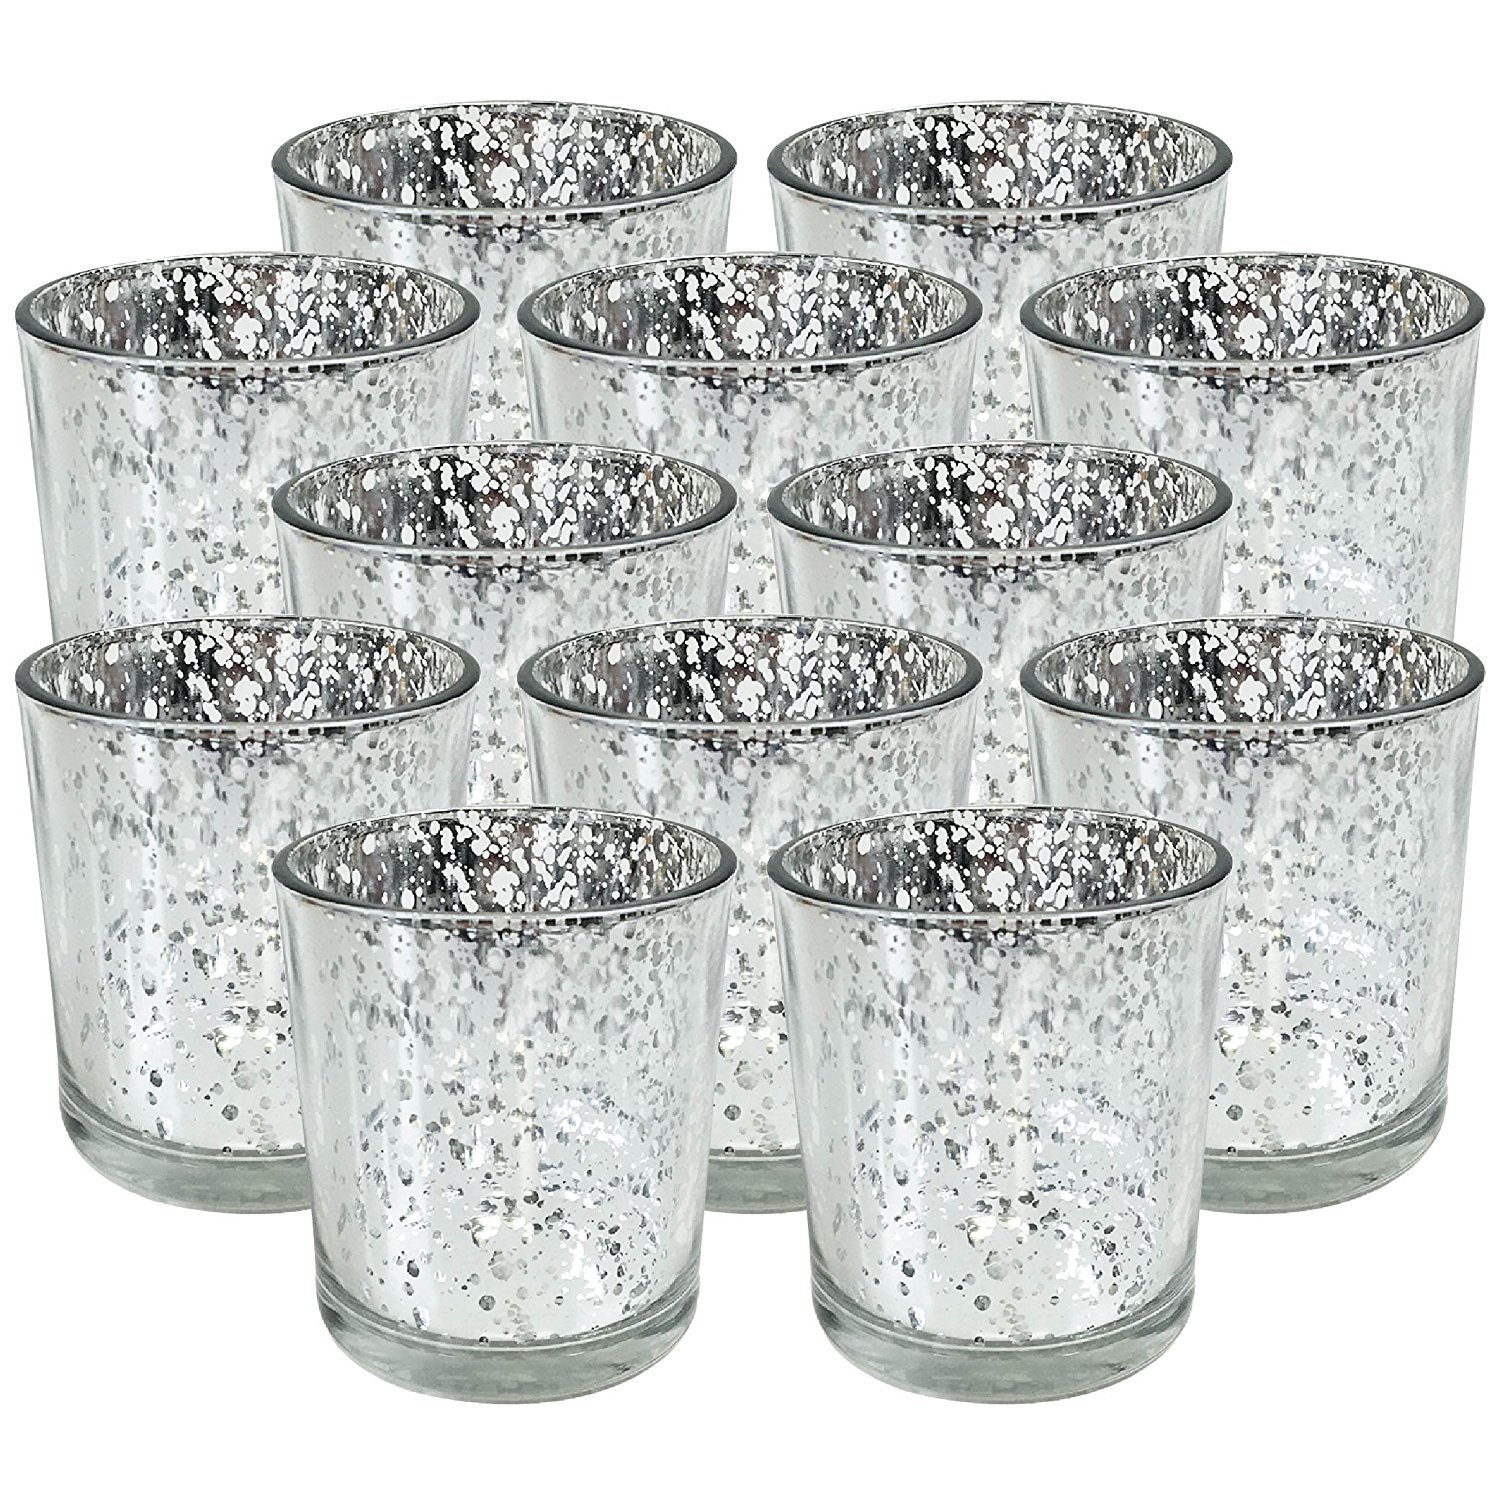 Just Artifacts Mercury GlassVotiveCandle Holder 4'' H(12pcs,Speckled Silver) - Mercury Glass Votive Tealight Candle Holders for Weddings, Parties and Home Decor